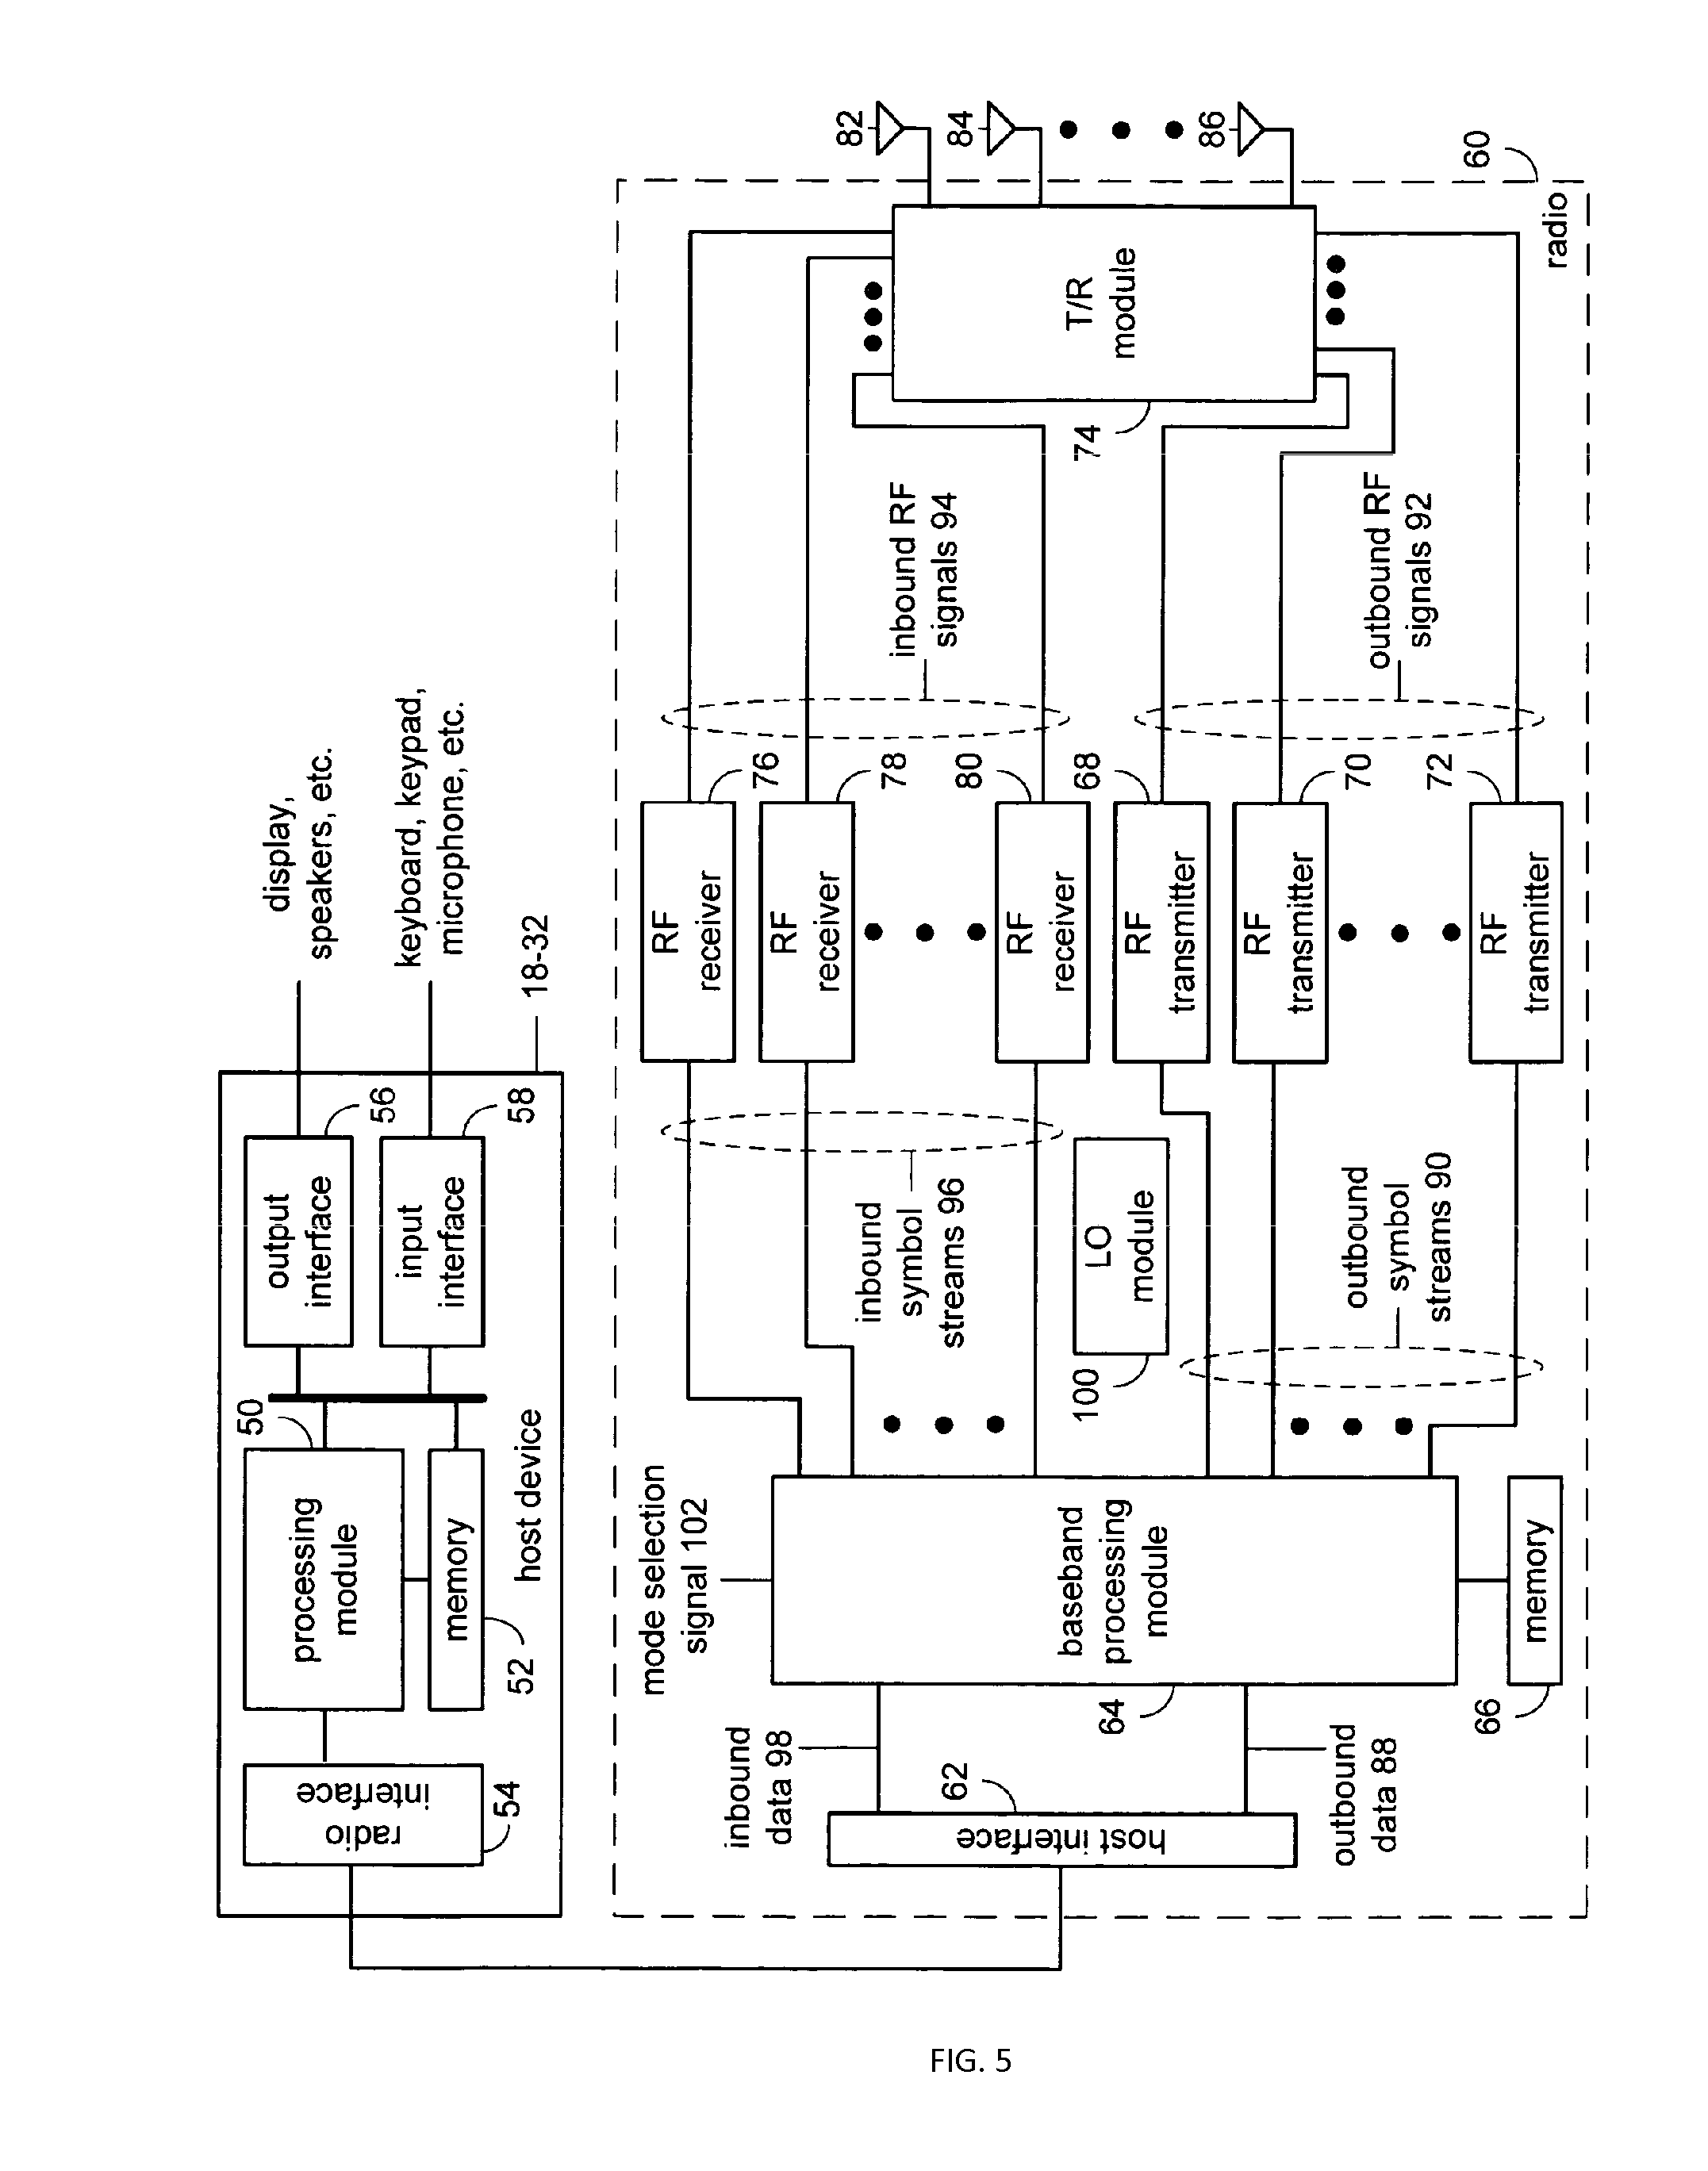 Lithonia Ibz Wiring Diagram together with Pir Motion Sensor Light Wiring Diagram further Leviton Lighting Connector as well Wattstopper Bz 50 Wiring Diagram besides Process pipe symbols. on occupancy sensors wiring diagram